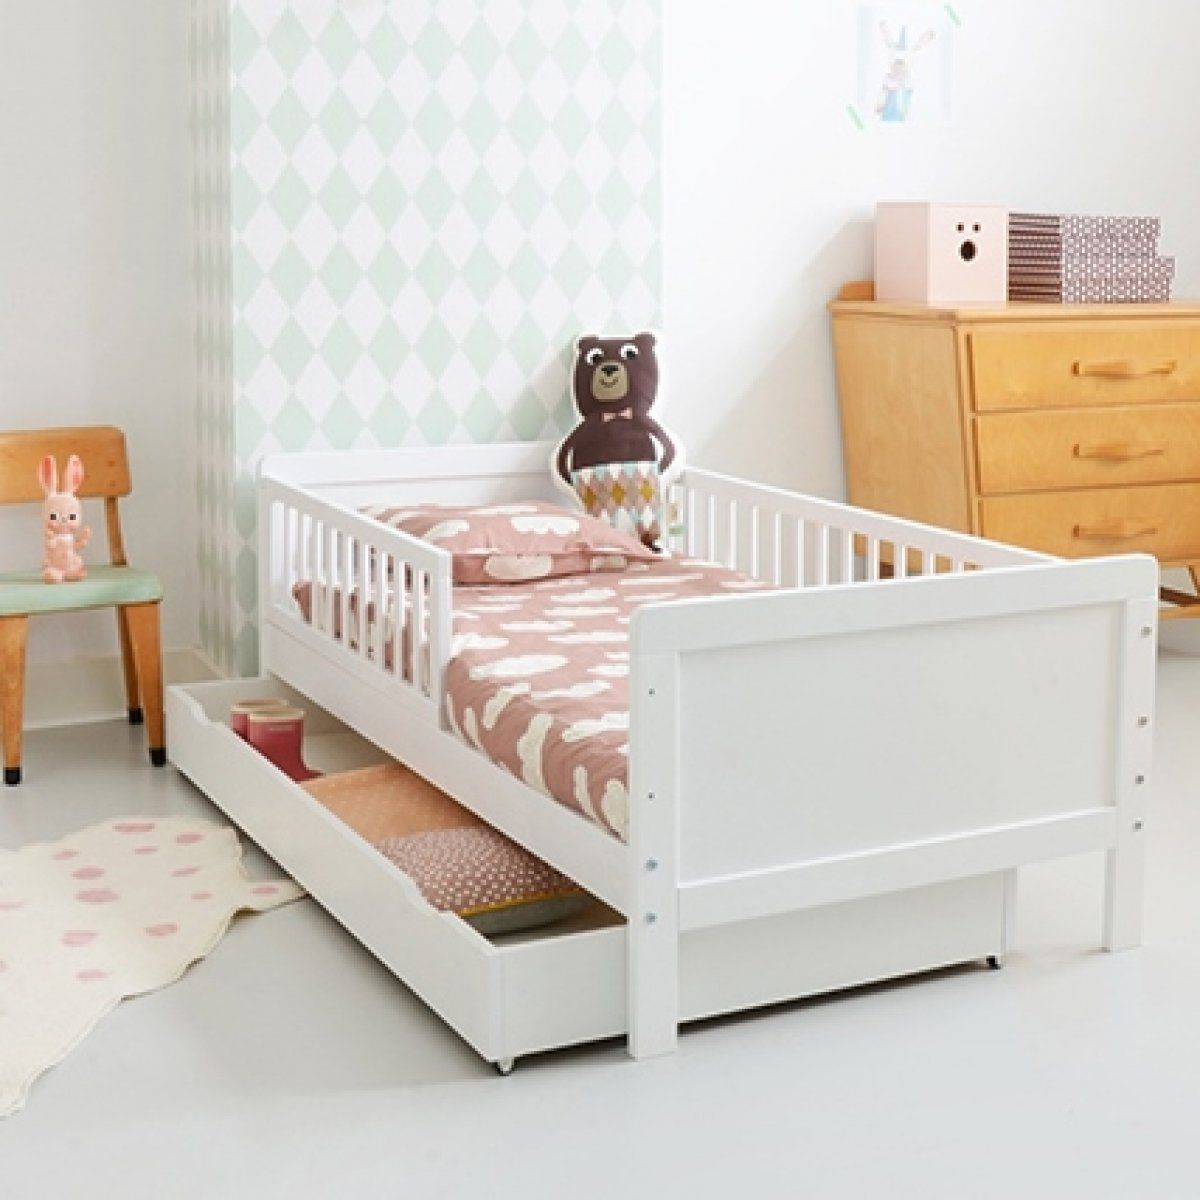 lit enfant bois blanc vivien et matelas par petite am lie lits enfants bebe pinterest lit. Black Bedroom Furniture Sets. Home Design Ideas